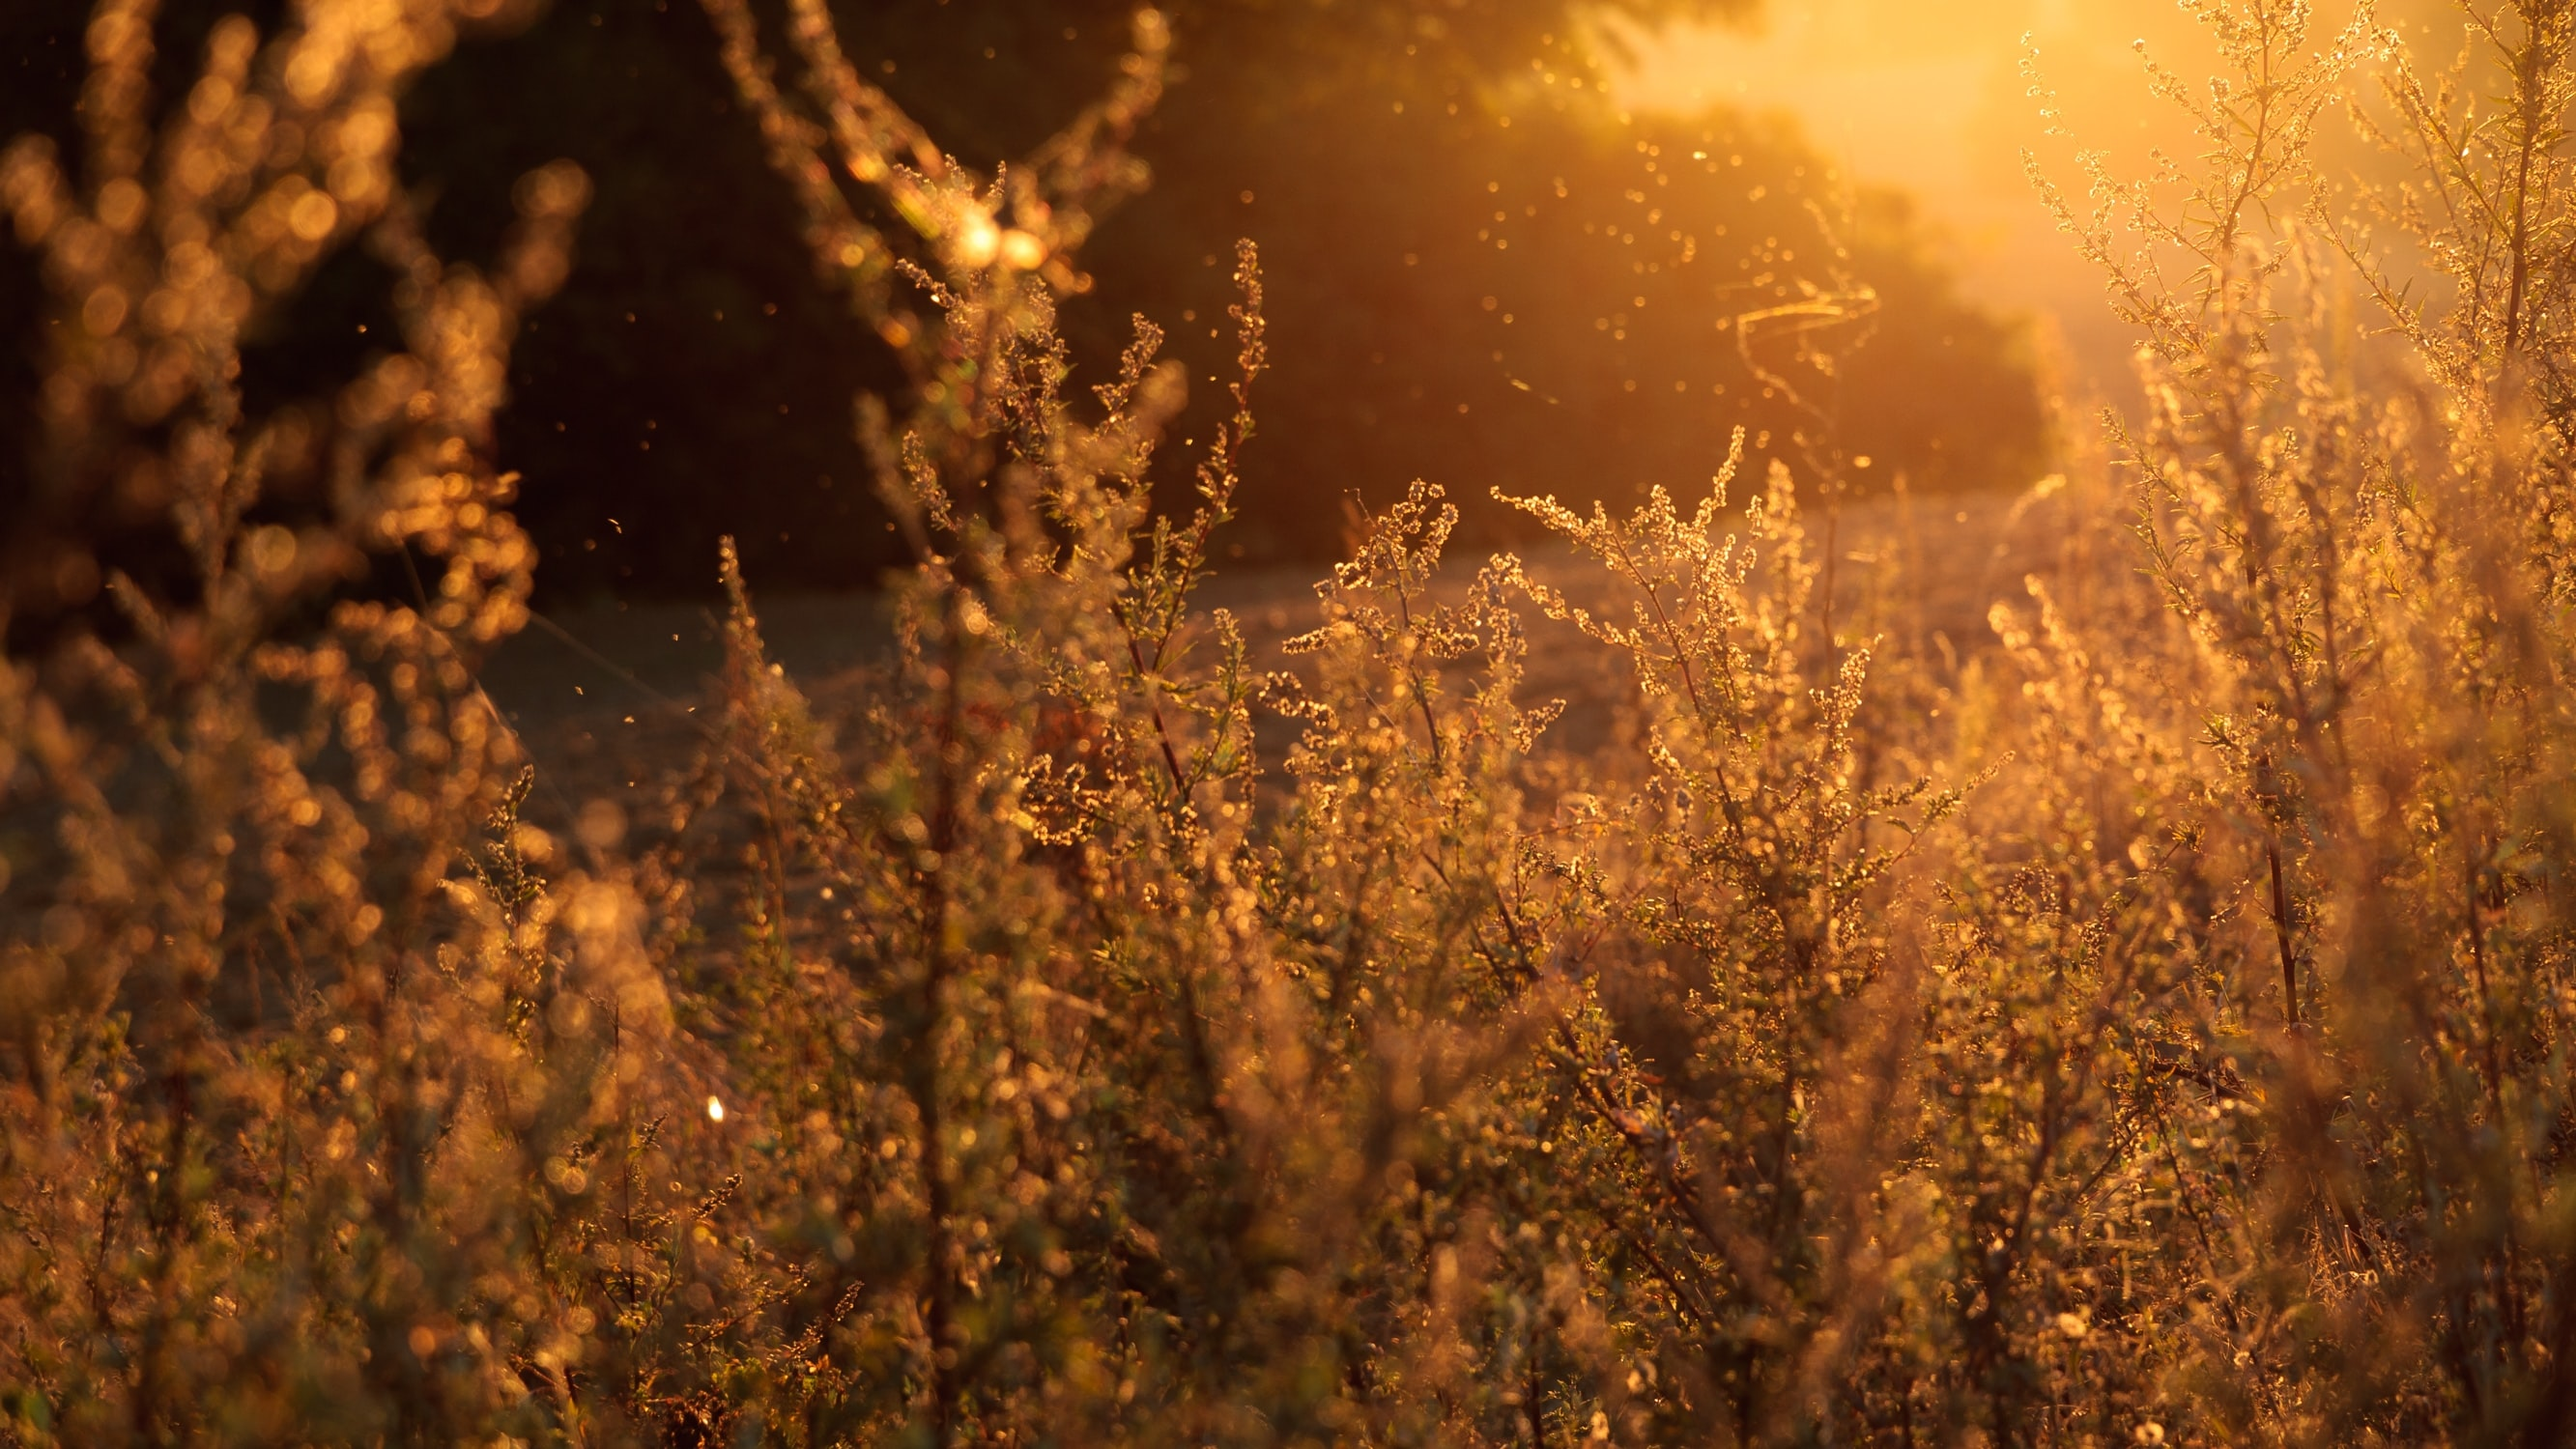 Flowering shrubs swaying in the wind under warm setting sun